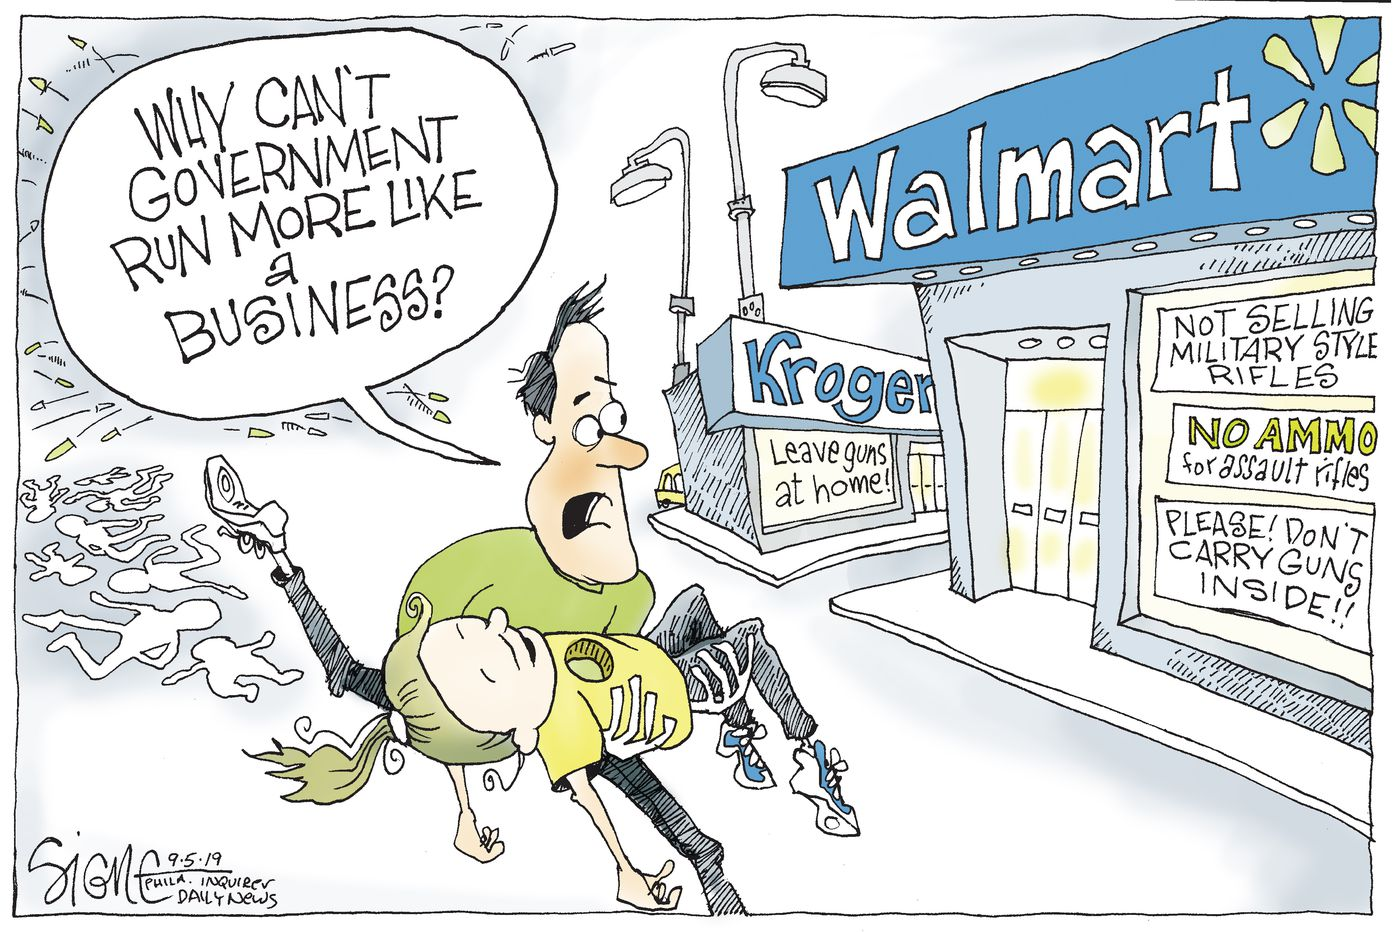 Political Cartoon: Business deals with gun control